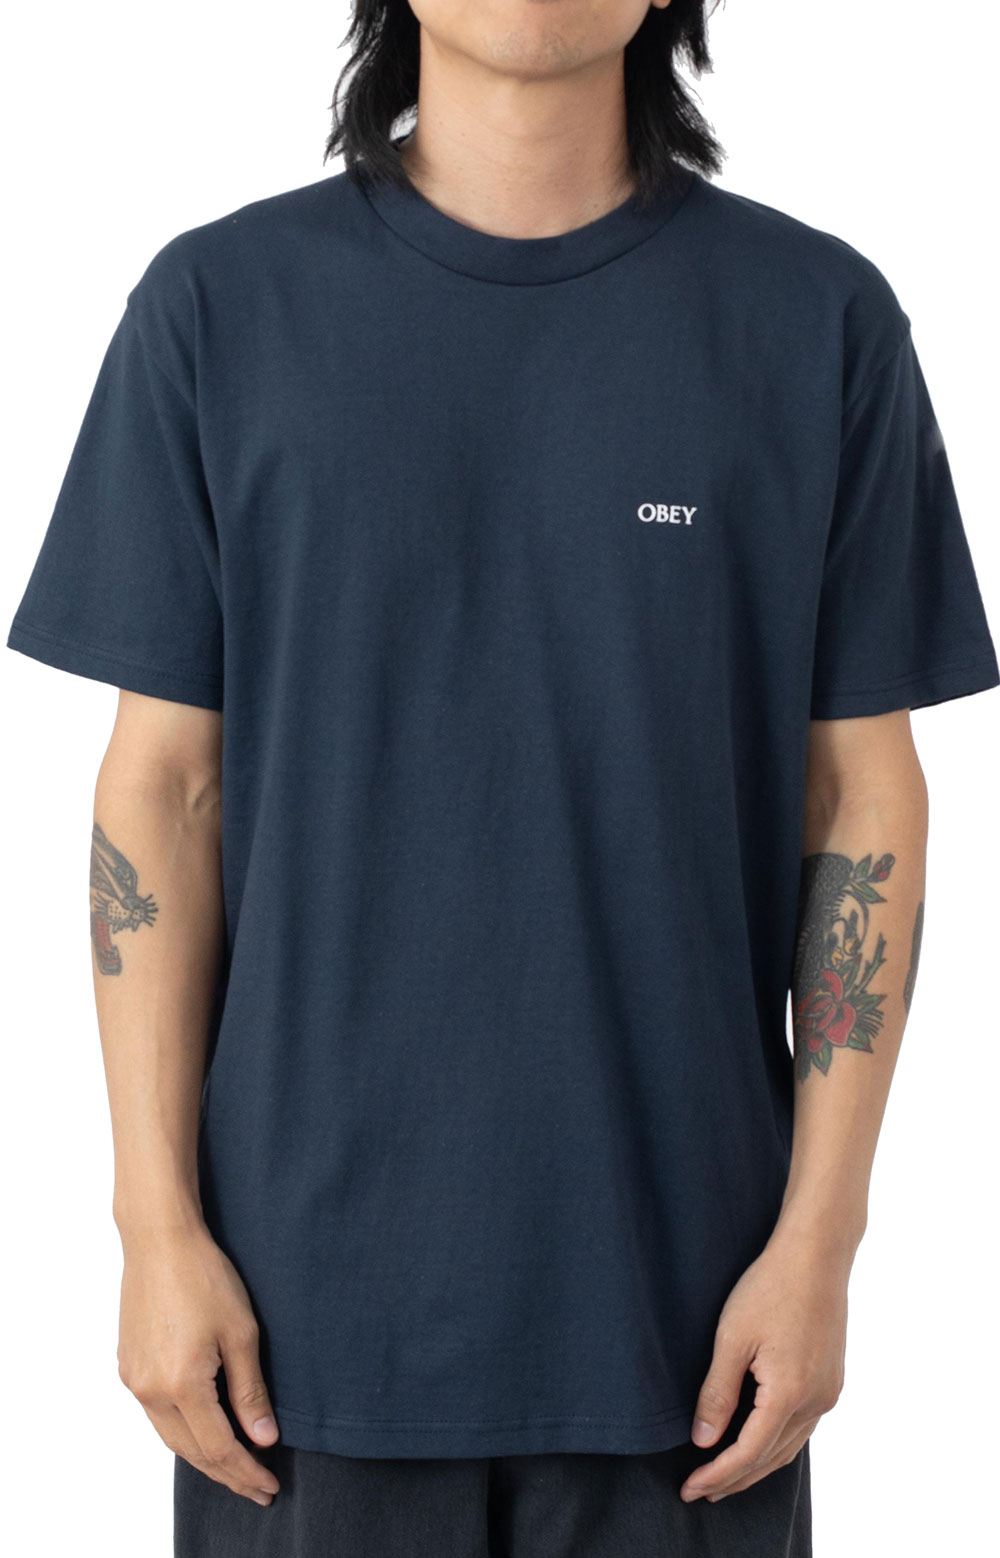 Obey Shattered Trance T-Shirt - Navy  2